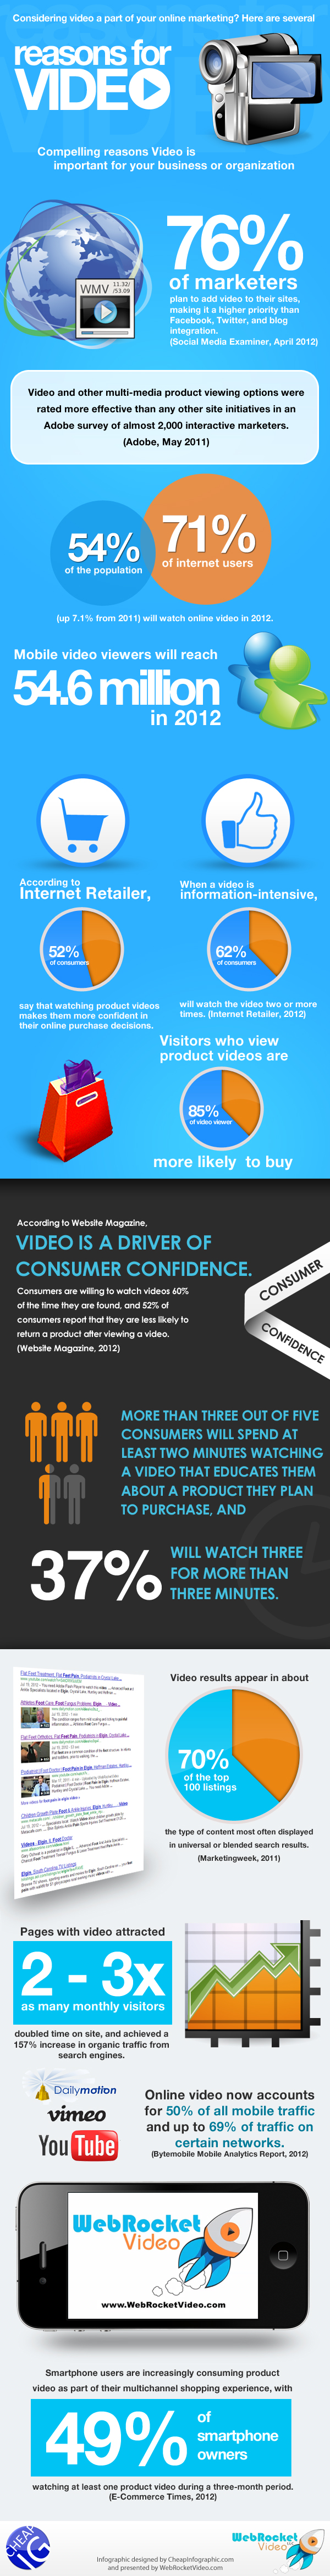 compelling-reasons-for-adding-video-to-your-website_50f96f58dec6c